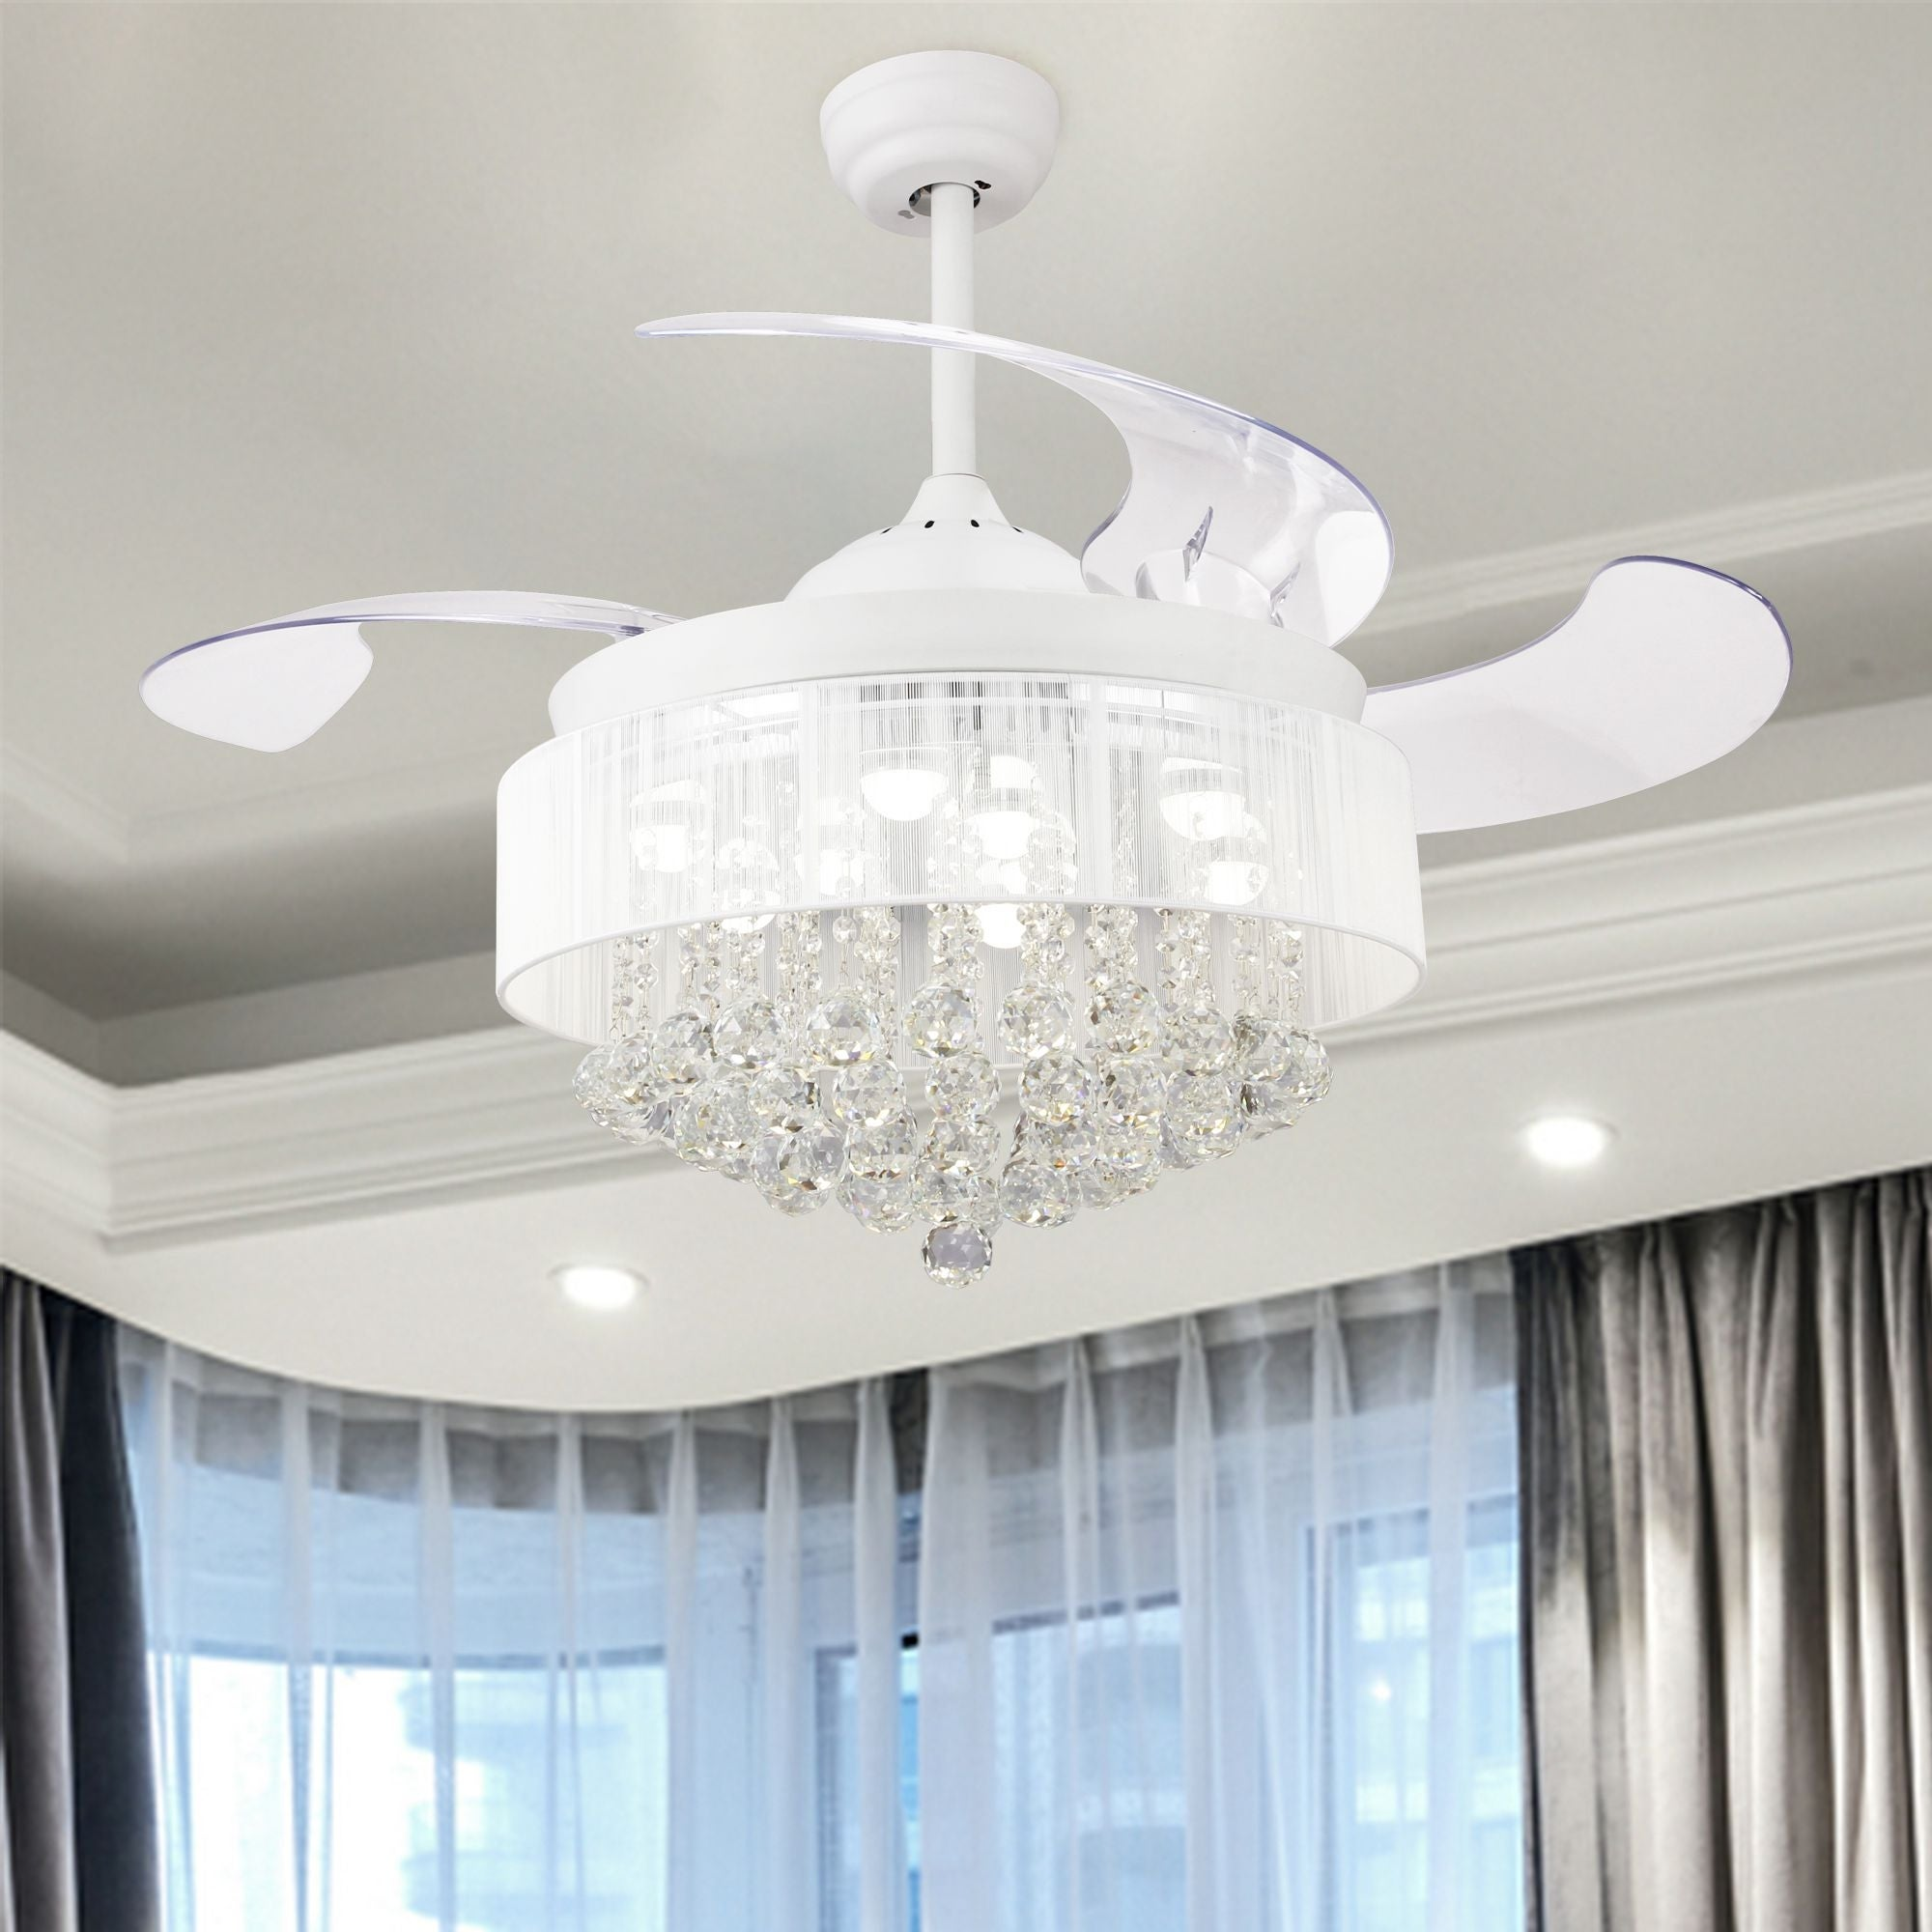 Shop Modern Crystal Fandelier Retractable 4-Blades LED Ceiling Fan ...